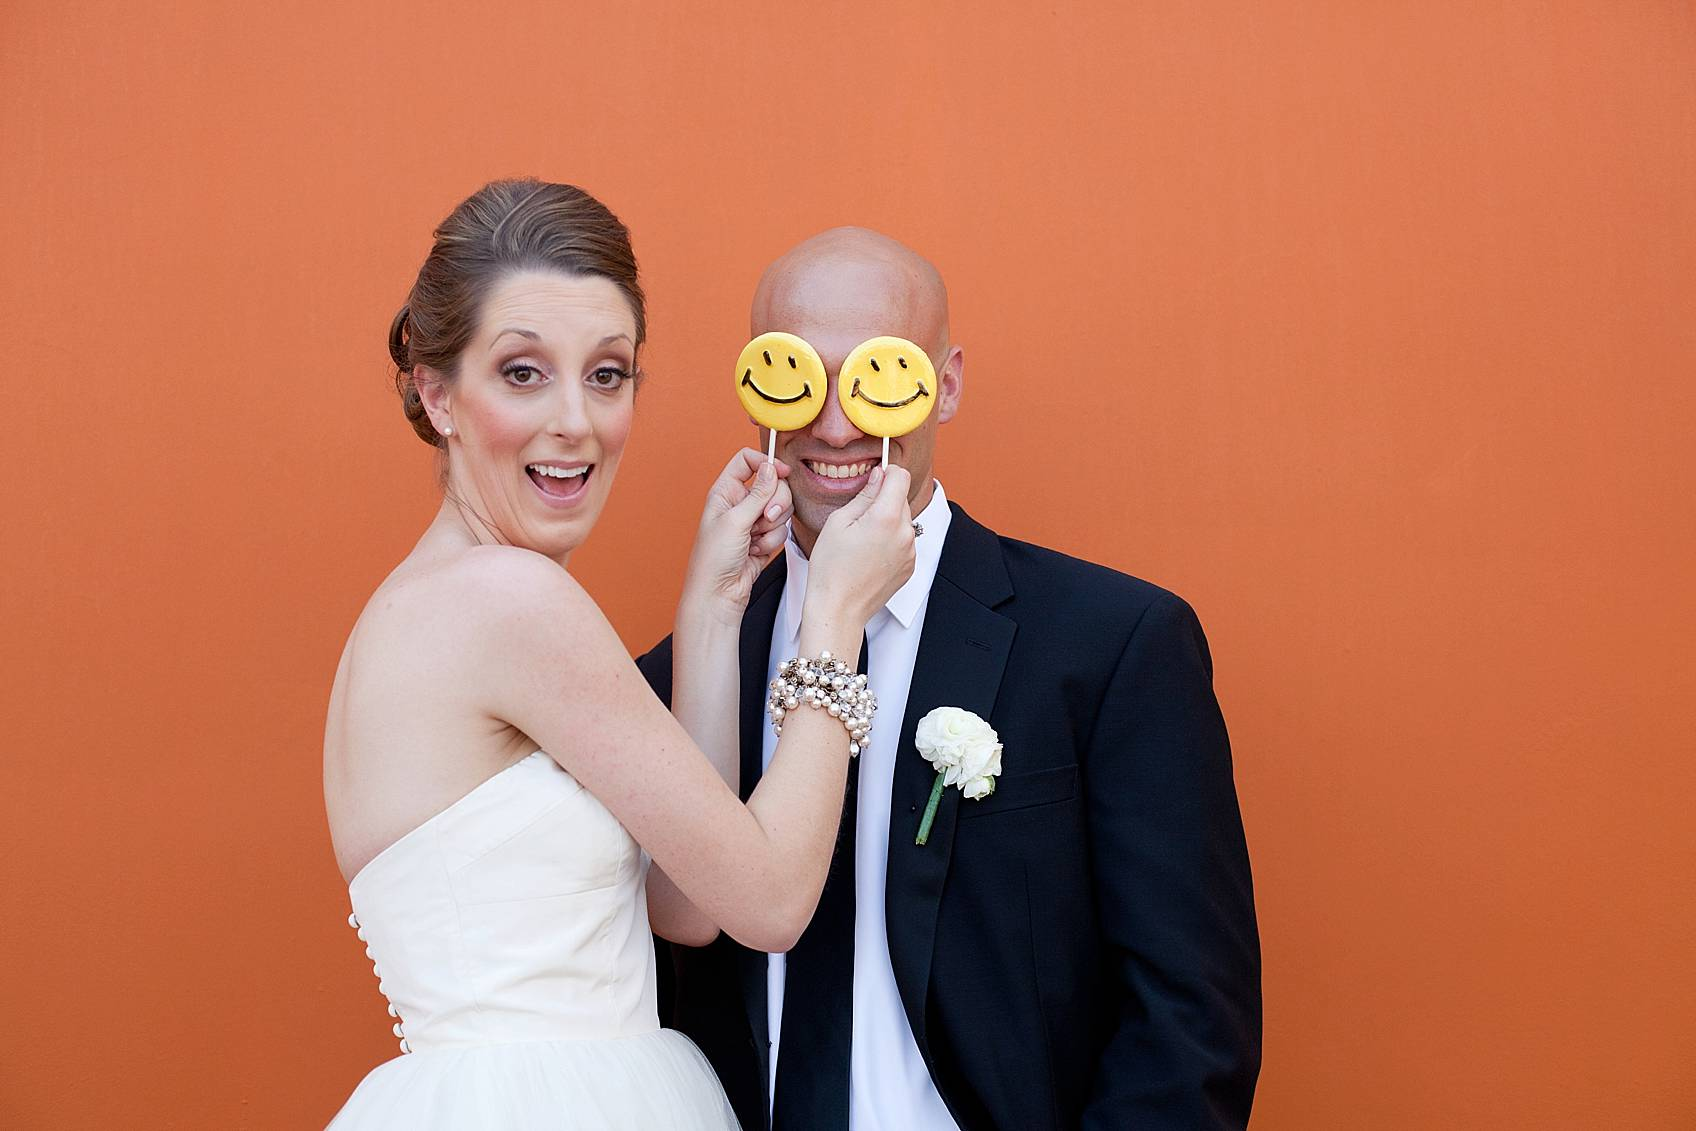 bride and groom goofing off with happy face lollipops